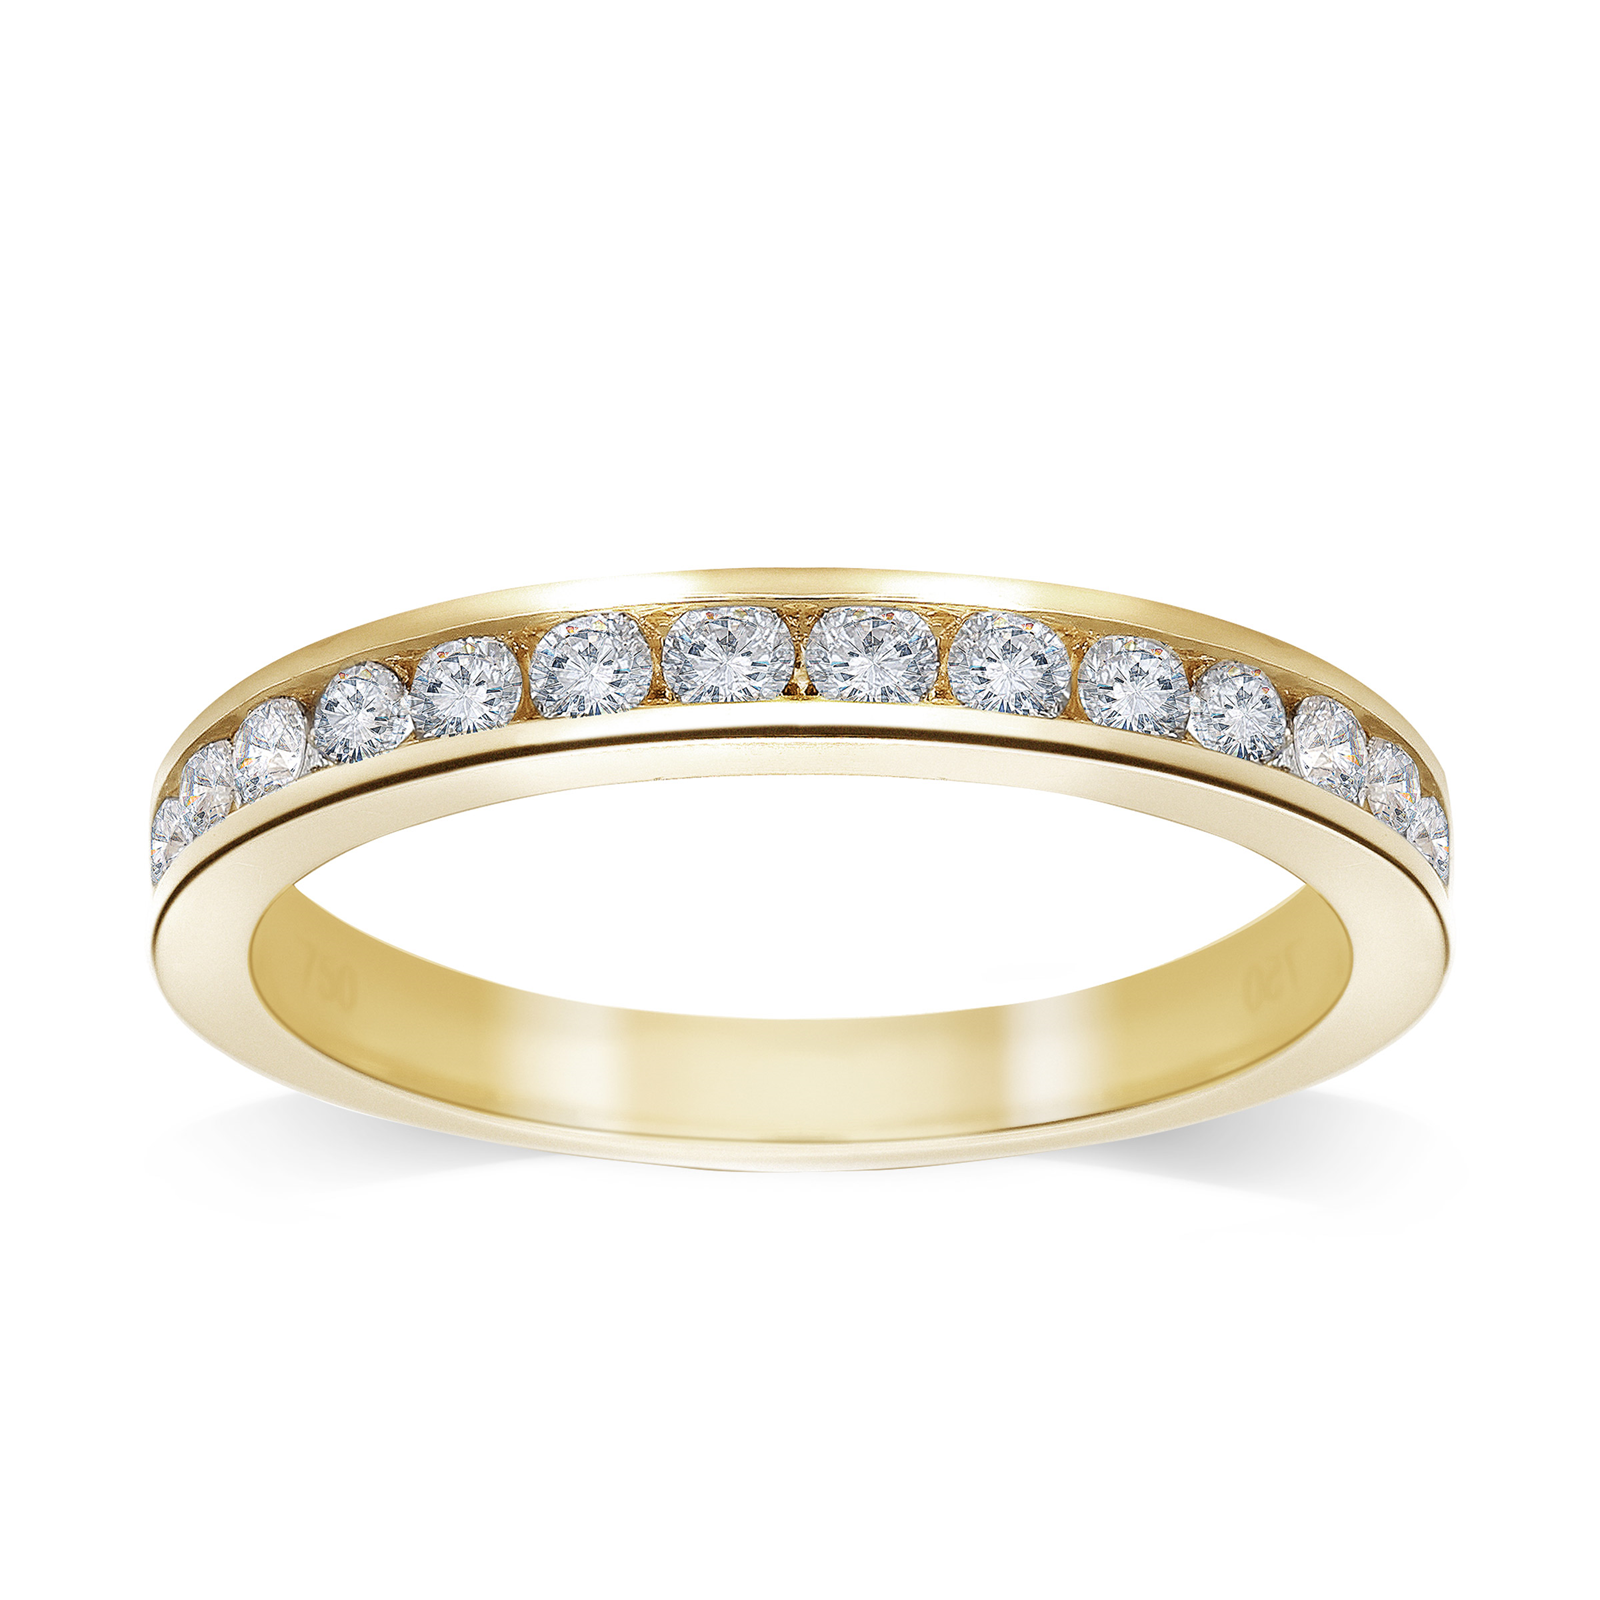 18ct Yellow Gold 0.50 Carat Brilliant Cut Half Eternity - Ring Size J